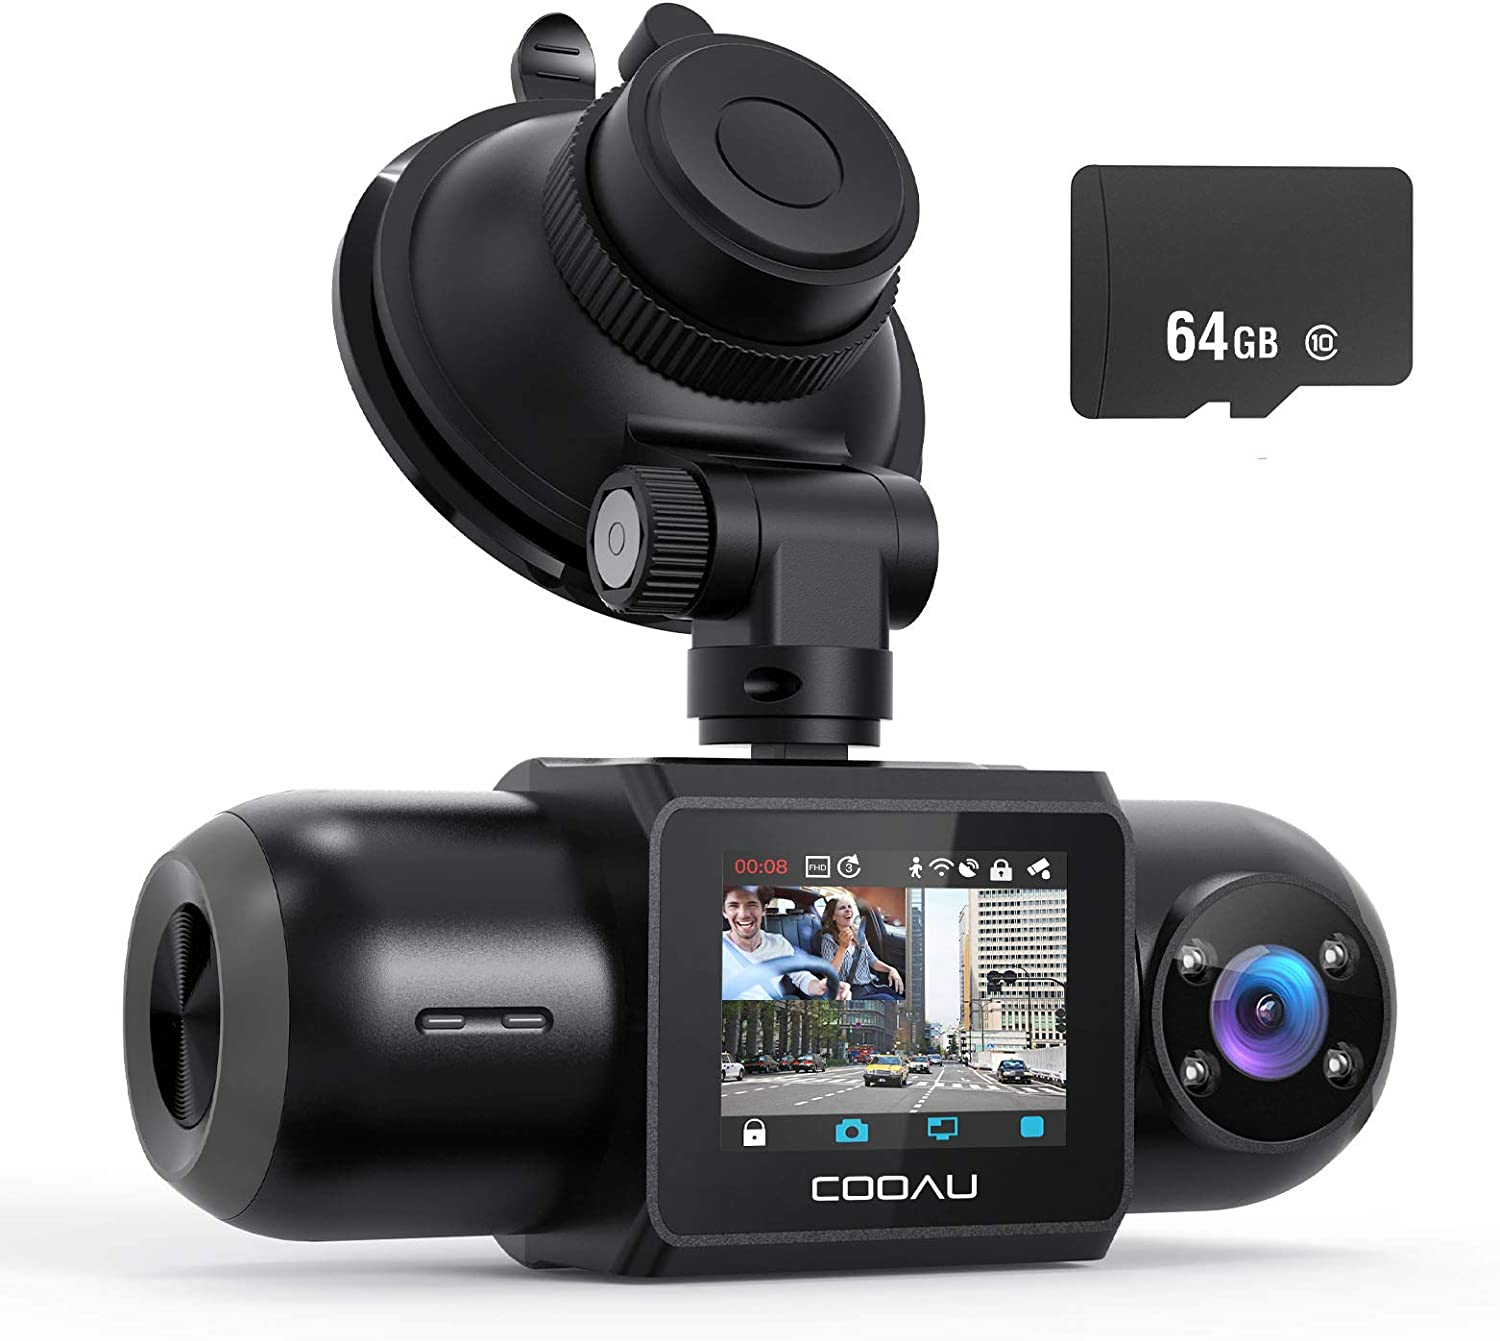 Dual Dash Cam, 64GB SD Card Included, 1080P FHD Built-in GPS Wi-Fi , Front and Inside Car Camera Recorder for Uber with Infrared Night Vision, Sony Sensor, 4 IR LEDs,G-Sensor, Parking Mode